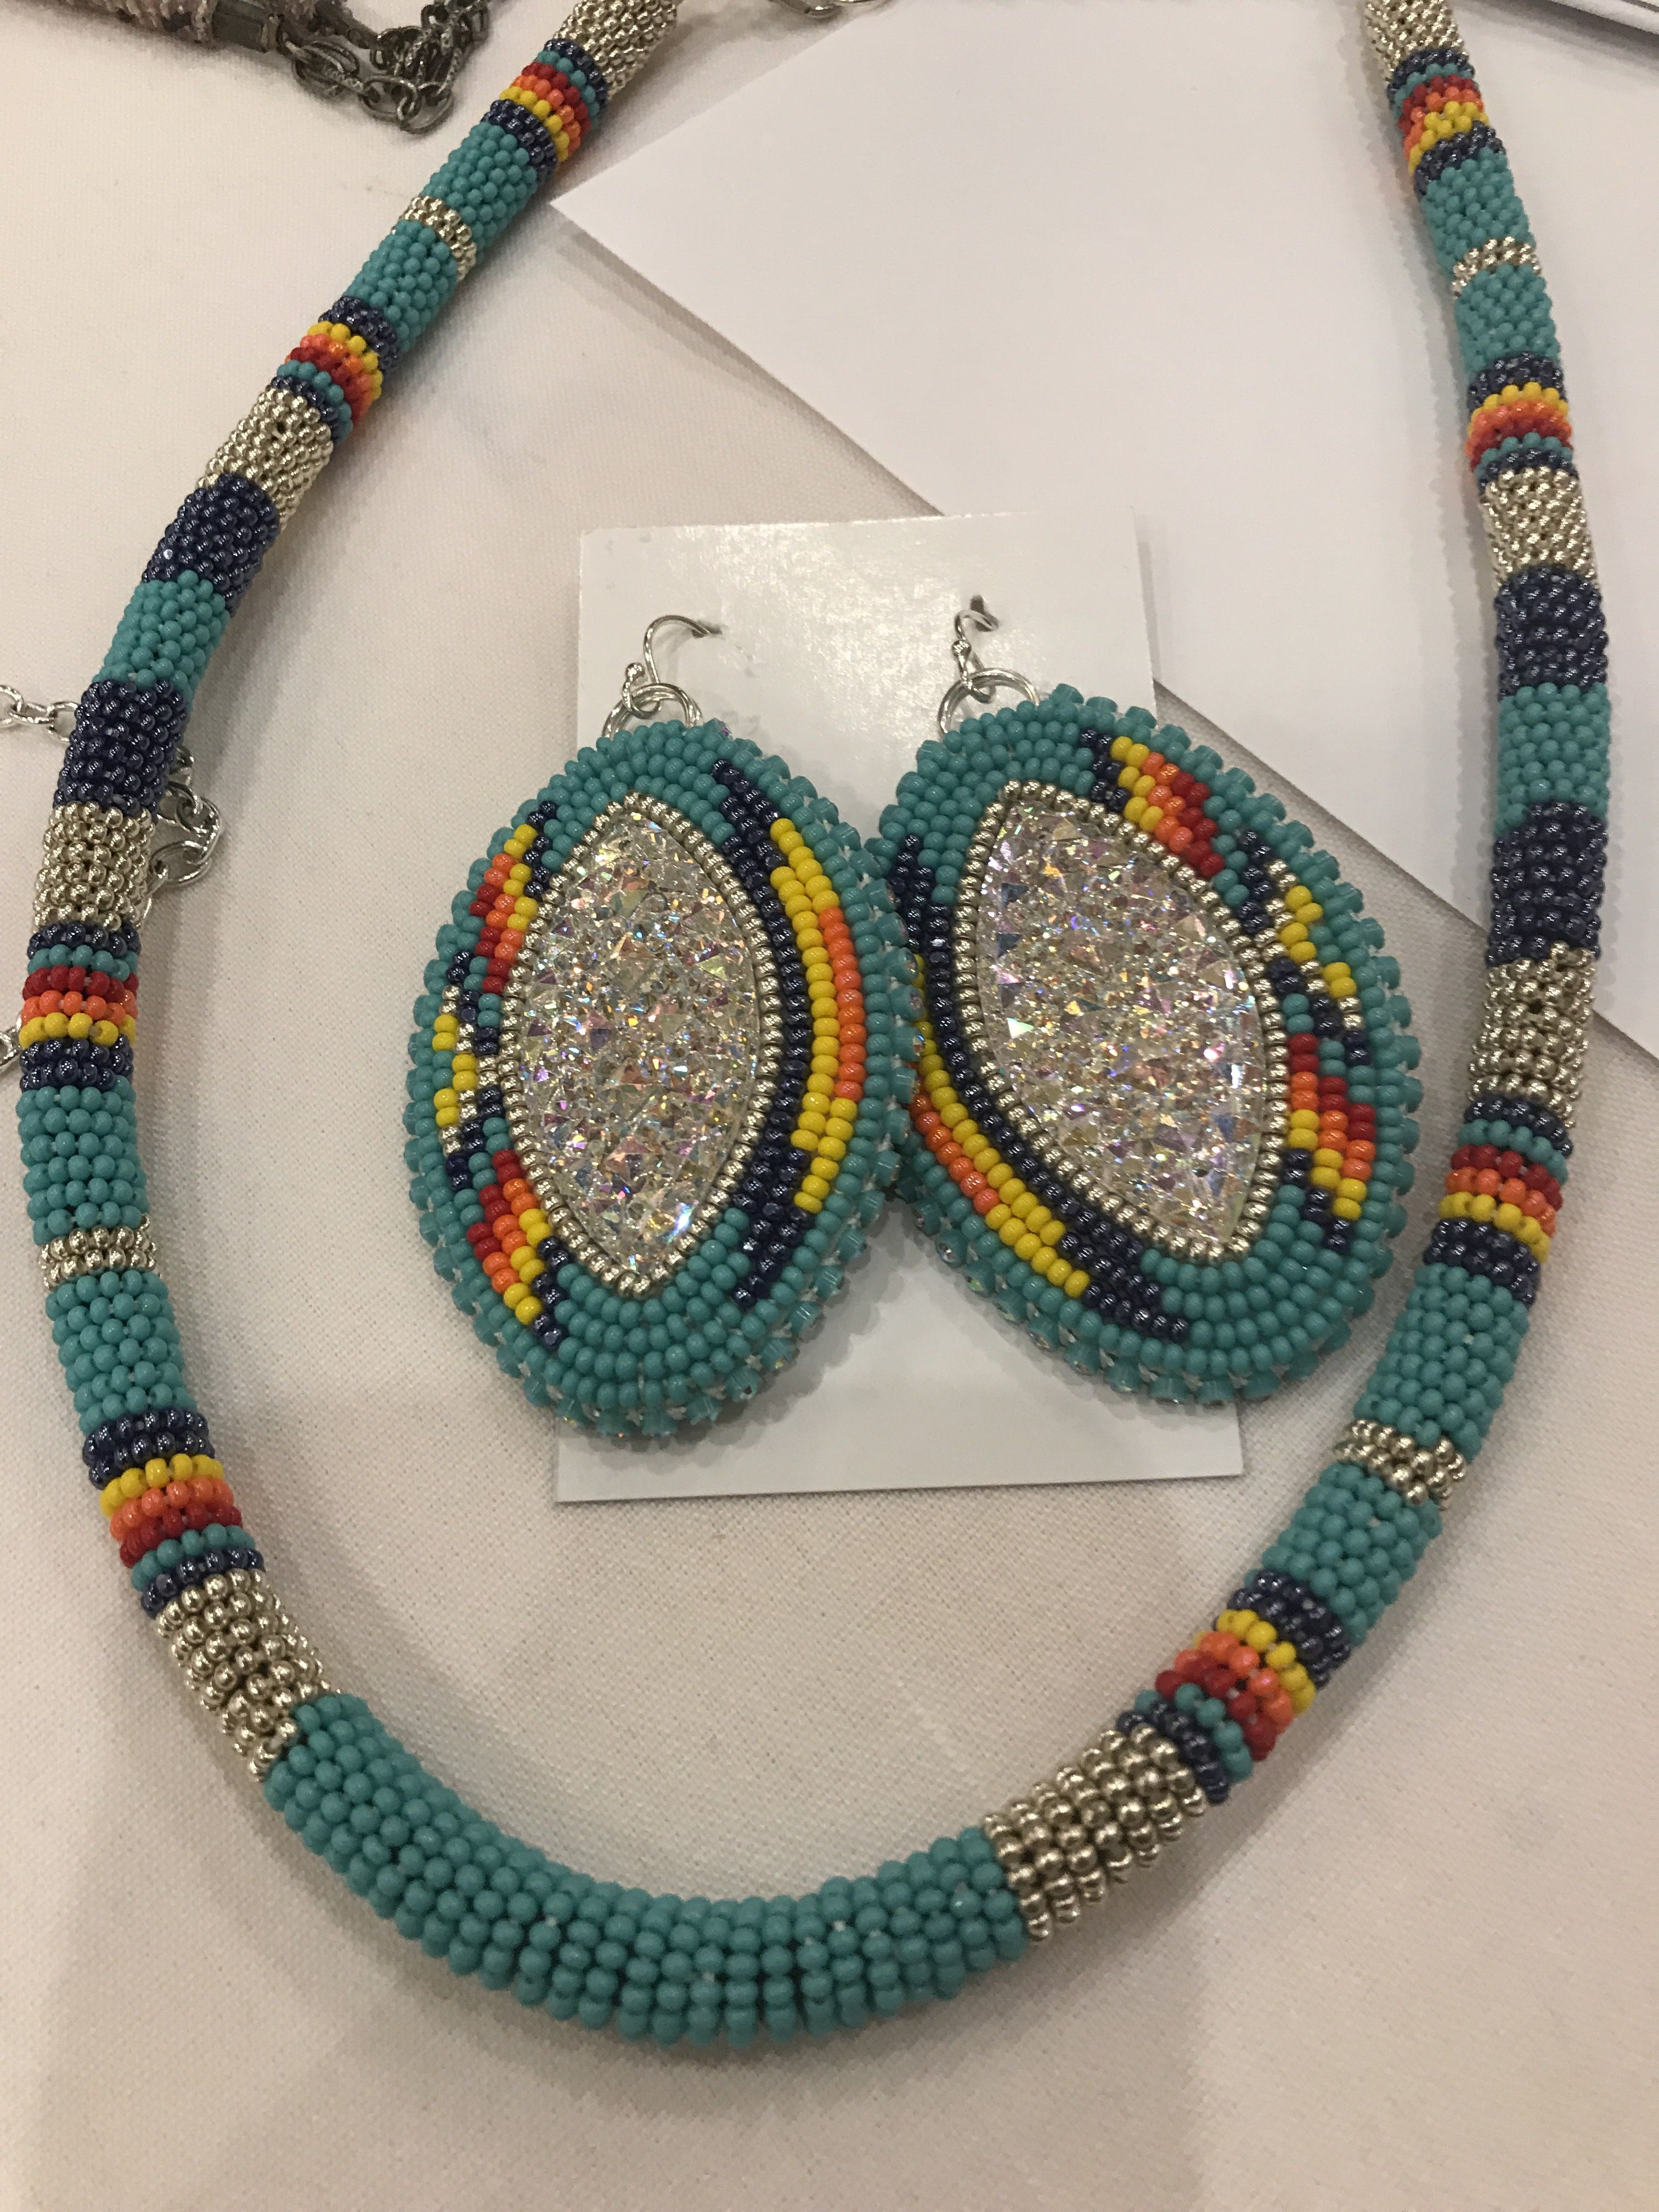 Necklace Earrings Set Made By Ina James Point Sold April 2019